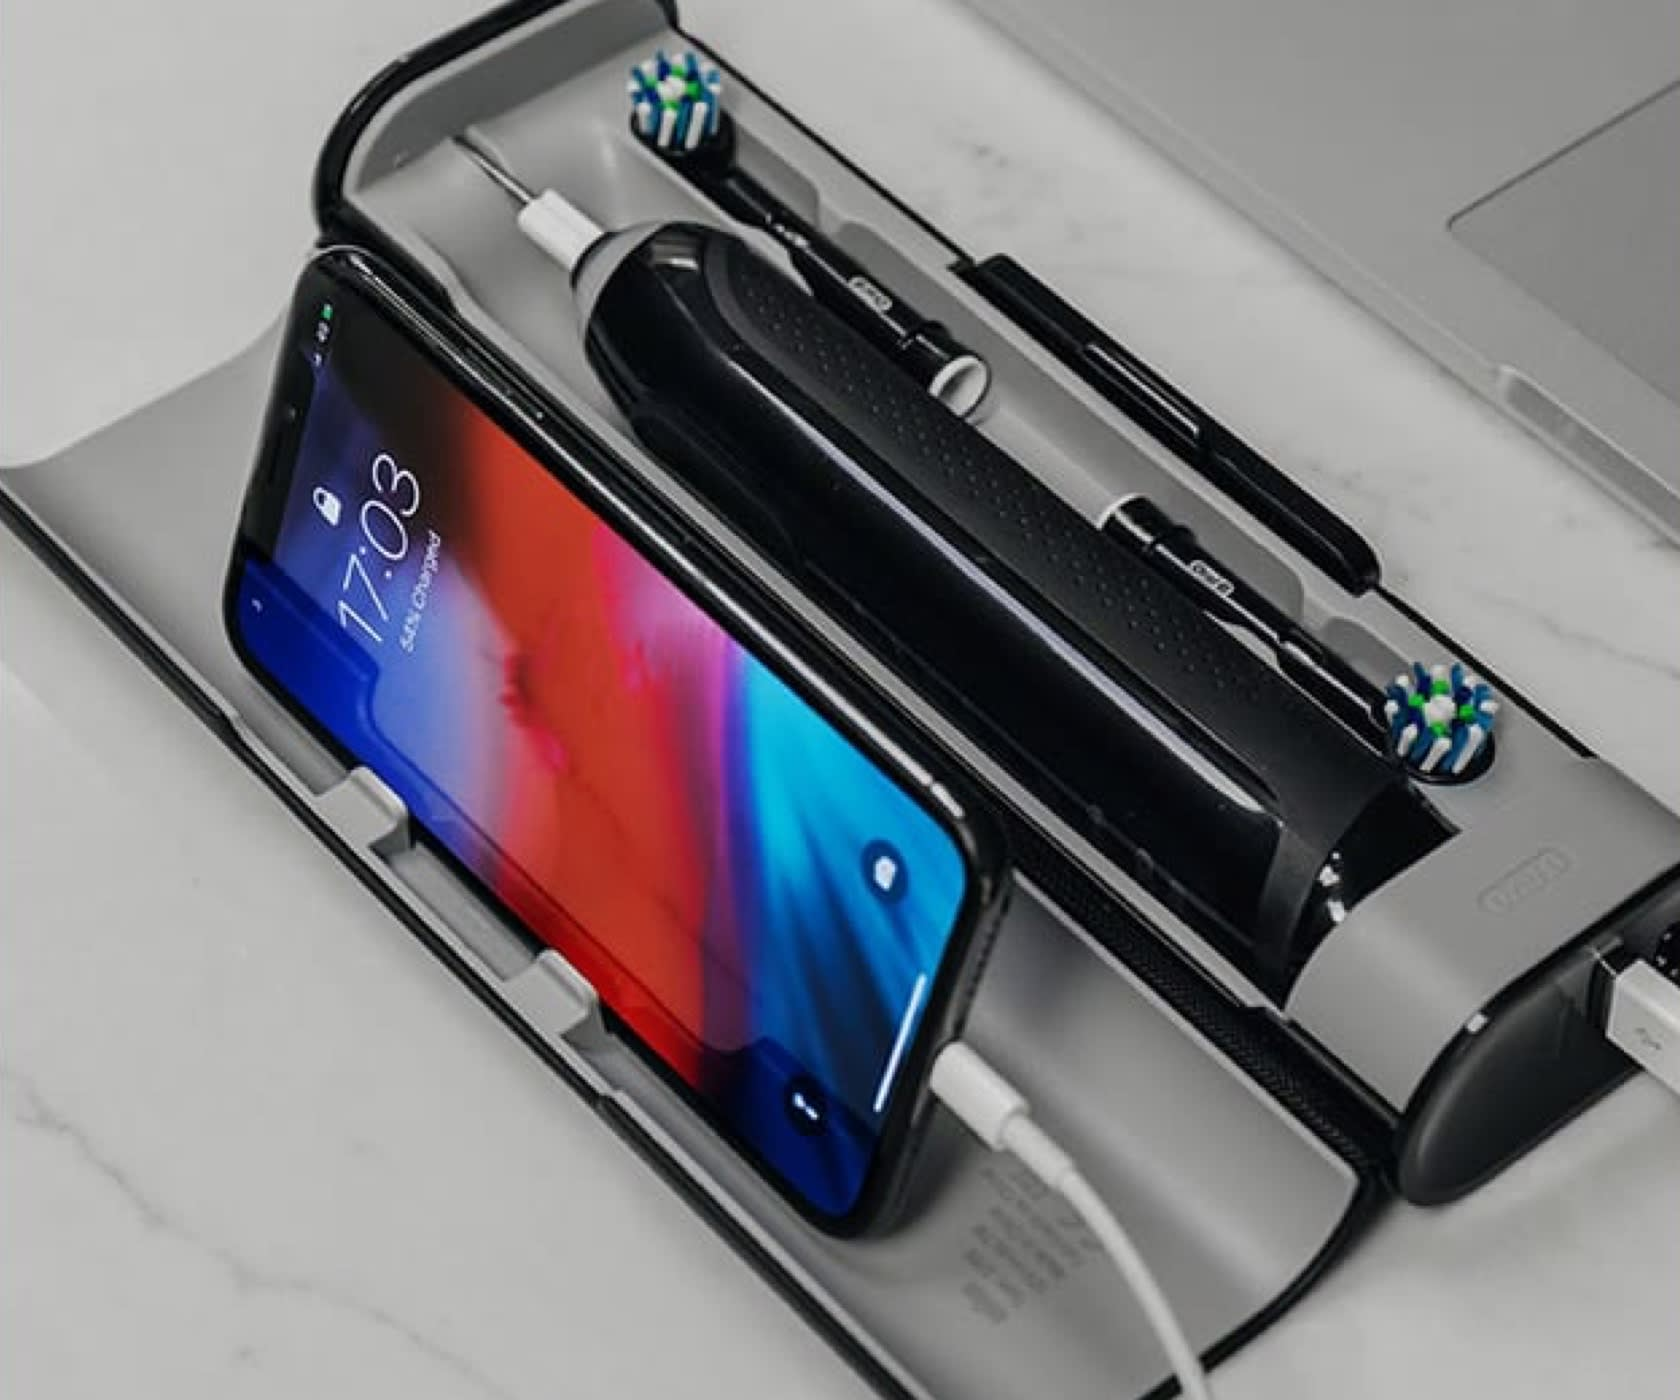 Premium travel case charges the Genius X brush and a phone at the same time undefined